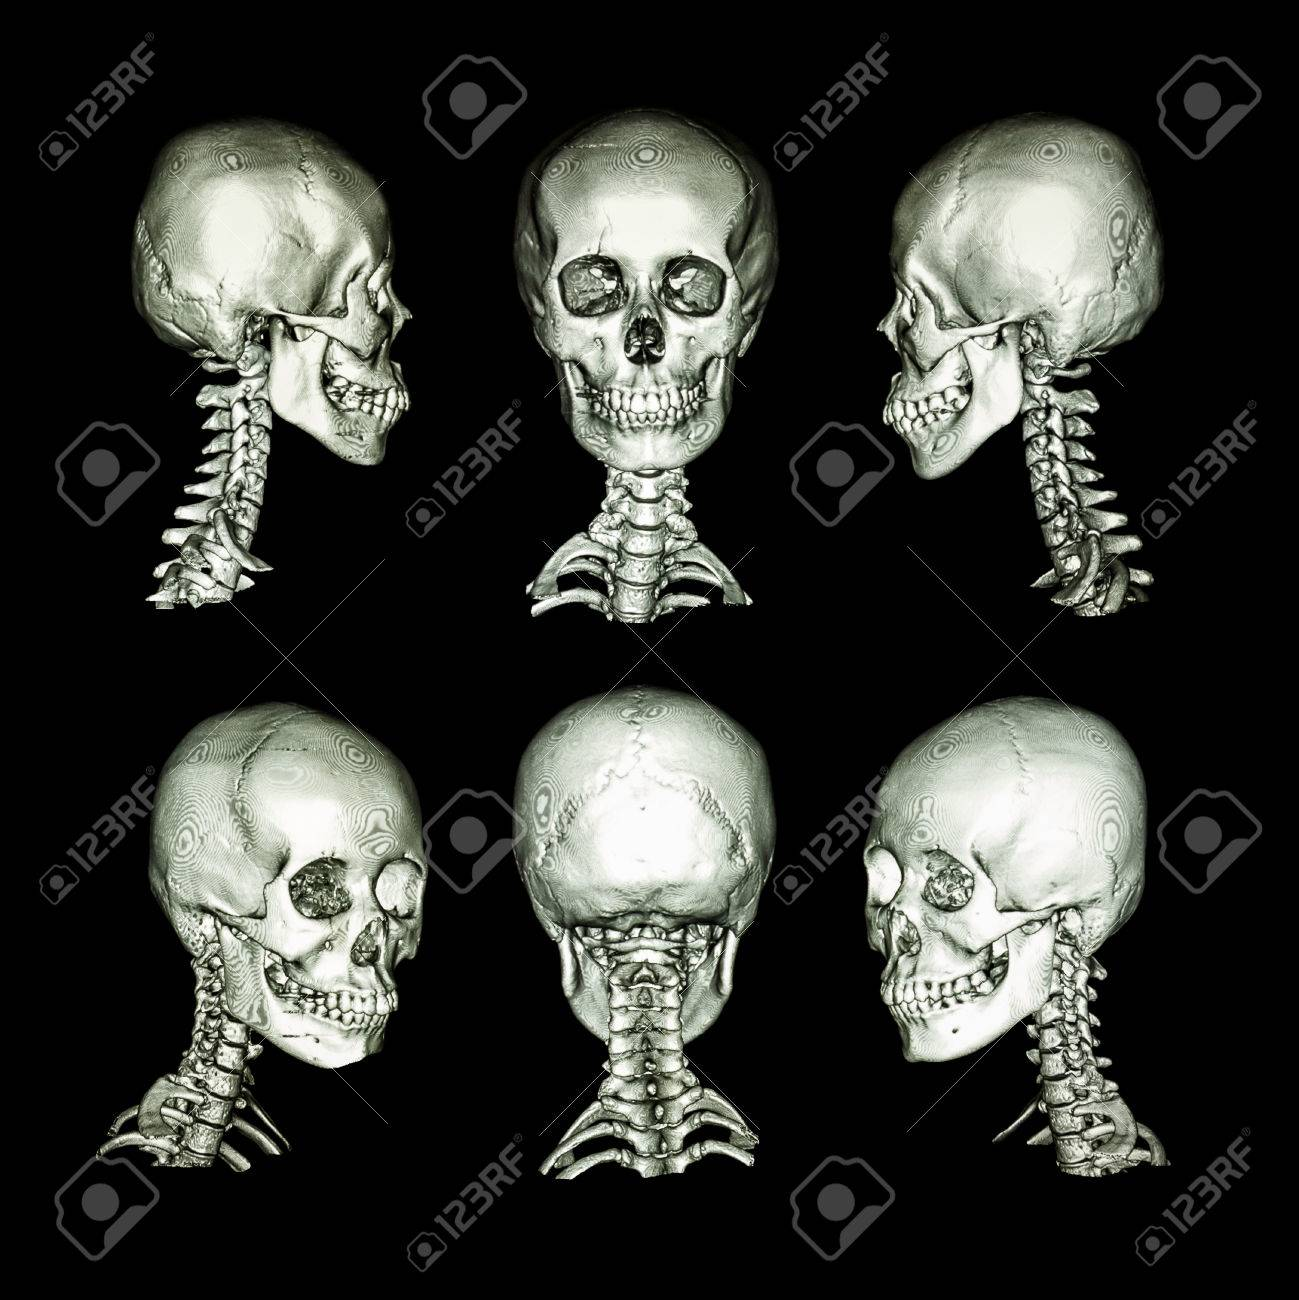 Ct Scan And 3d Image Normal Human Skull And Cervical Spine Stock